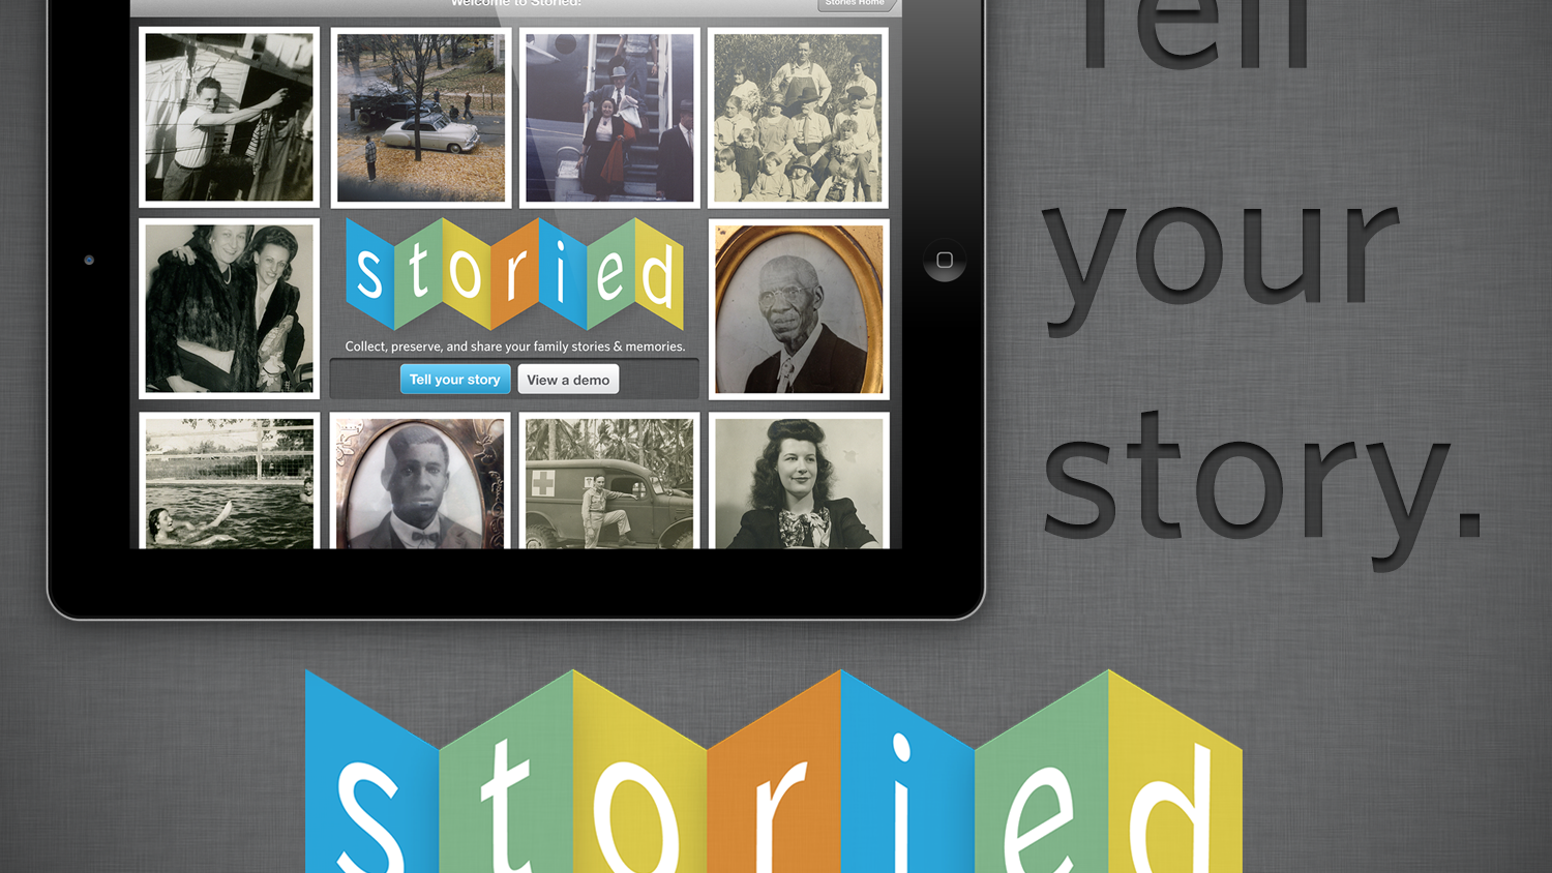 Storied: Capture and Share Family Stories by Elijah Woolery